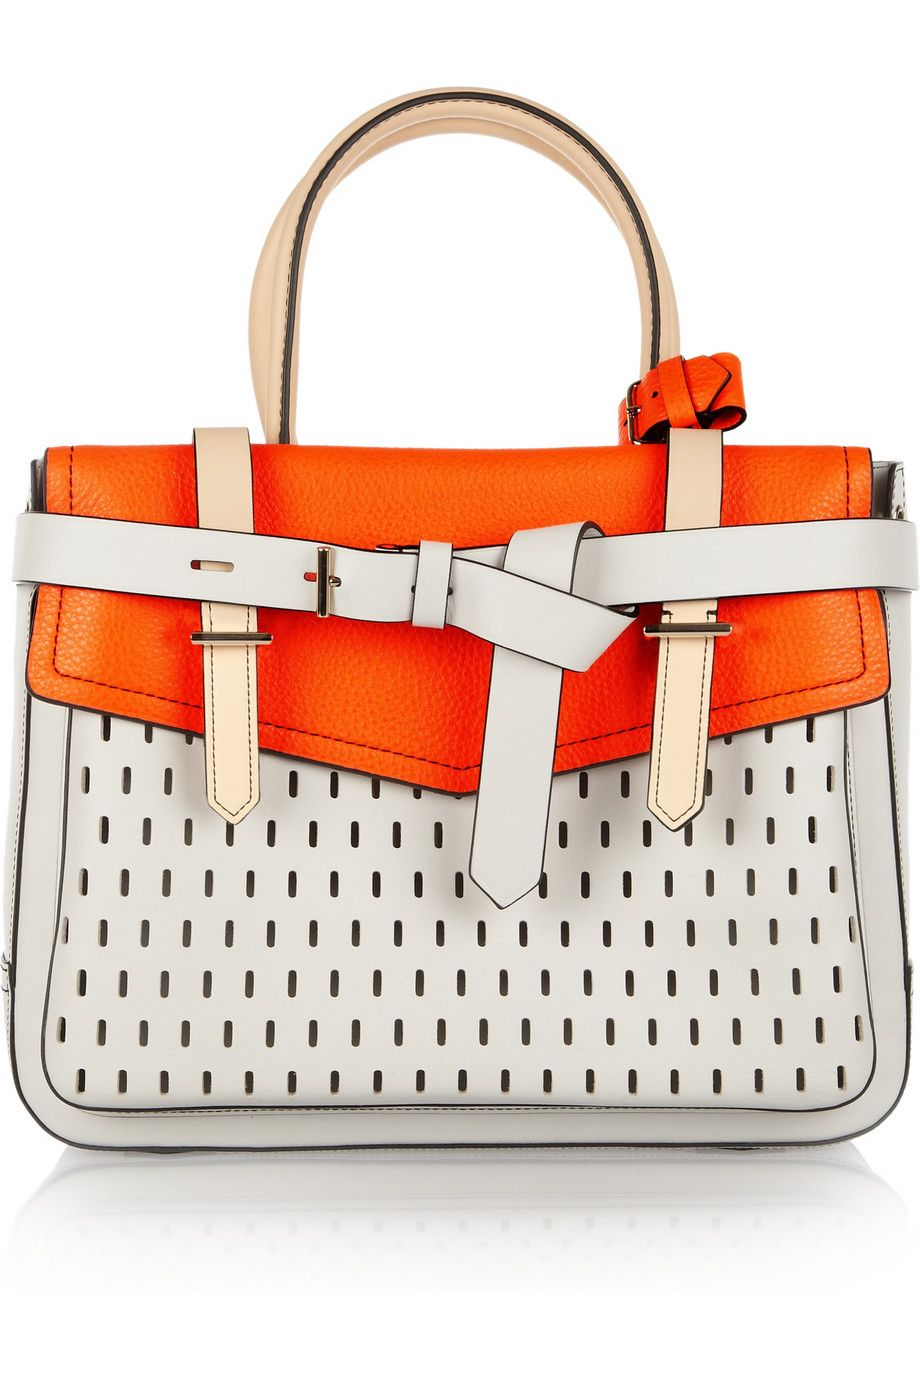 Reed Krakoff|Boxer perforated leather tote